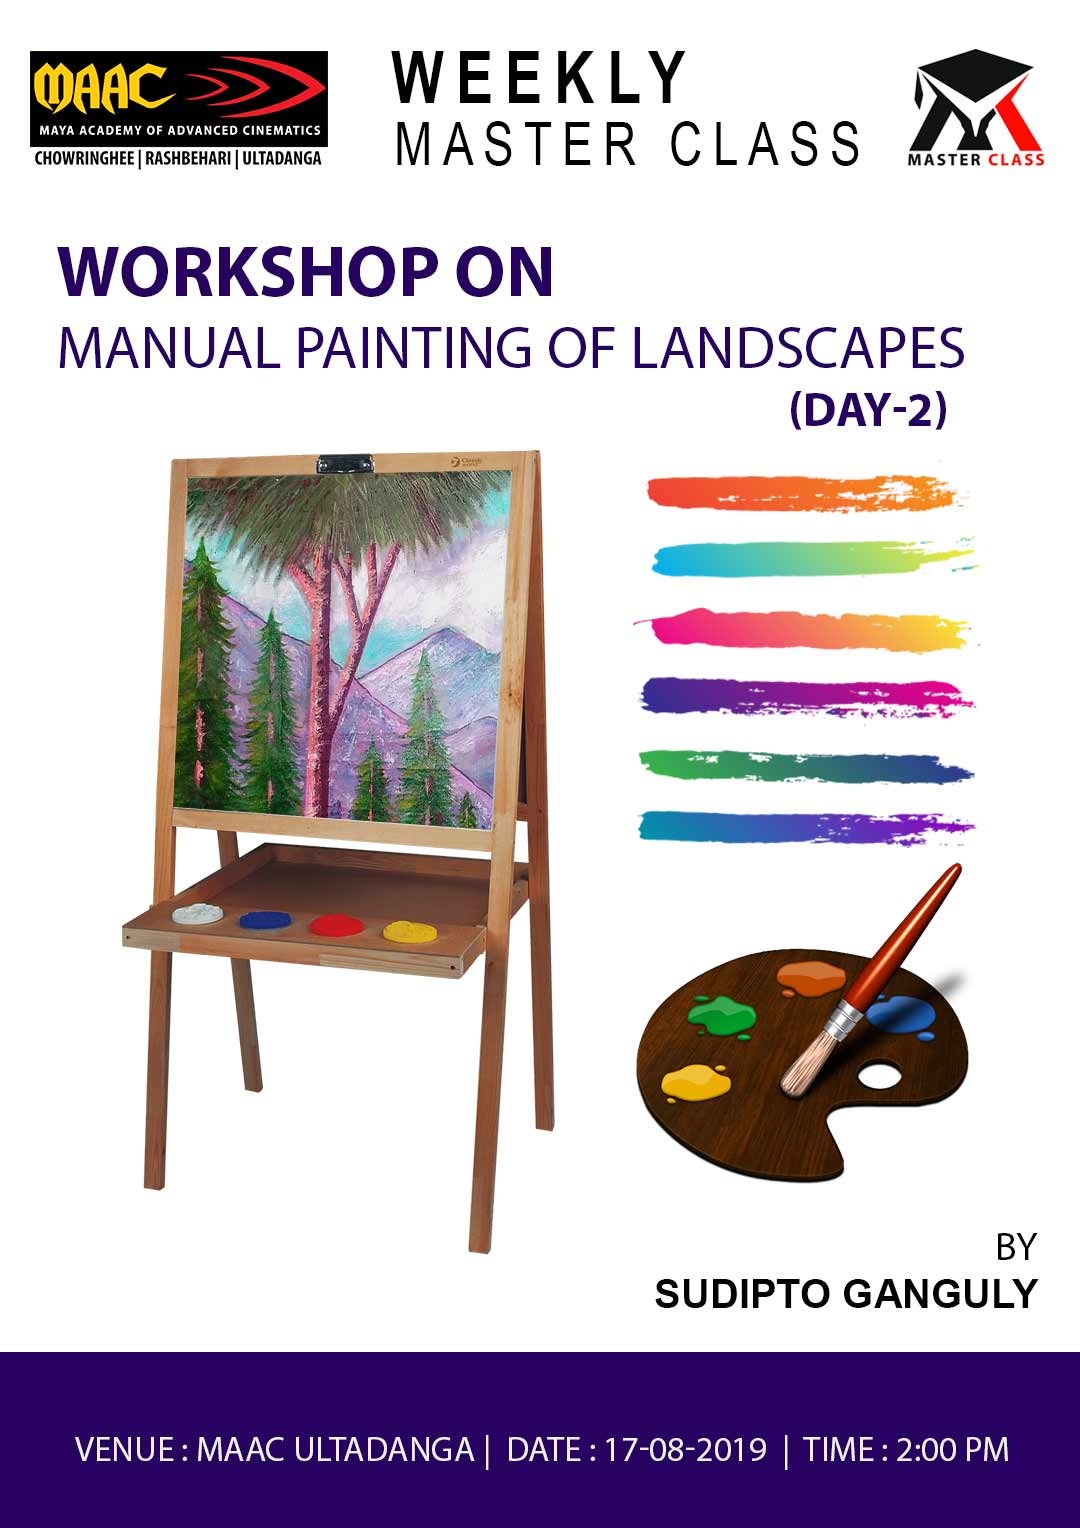 Weekly Master Class on Manual Painting of Landscapes Day 2